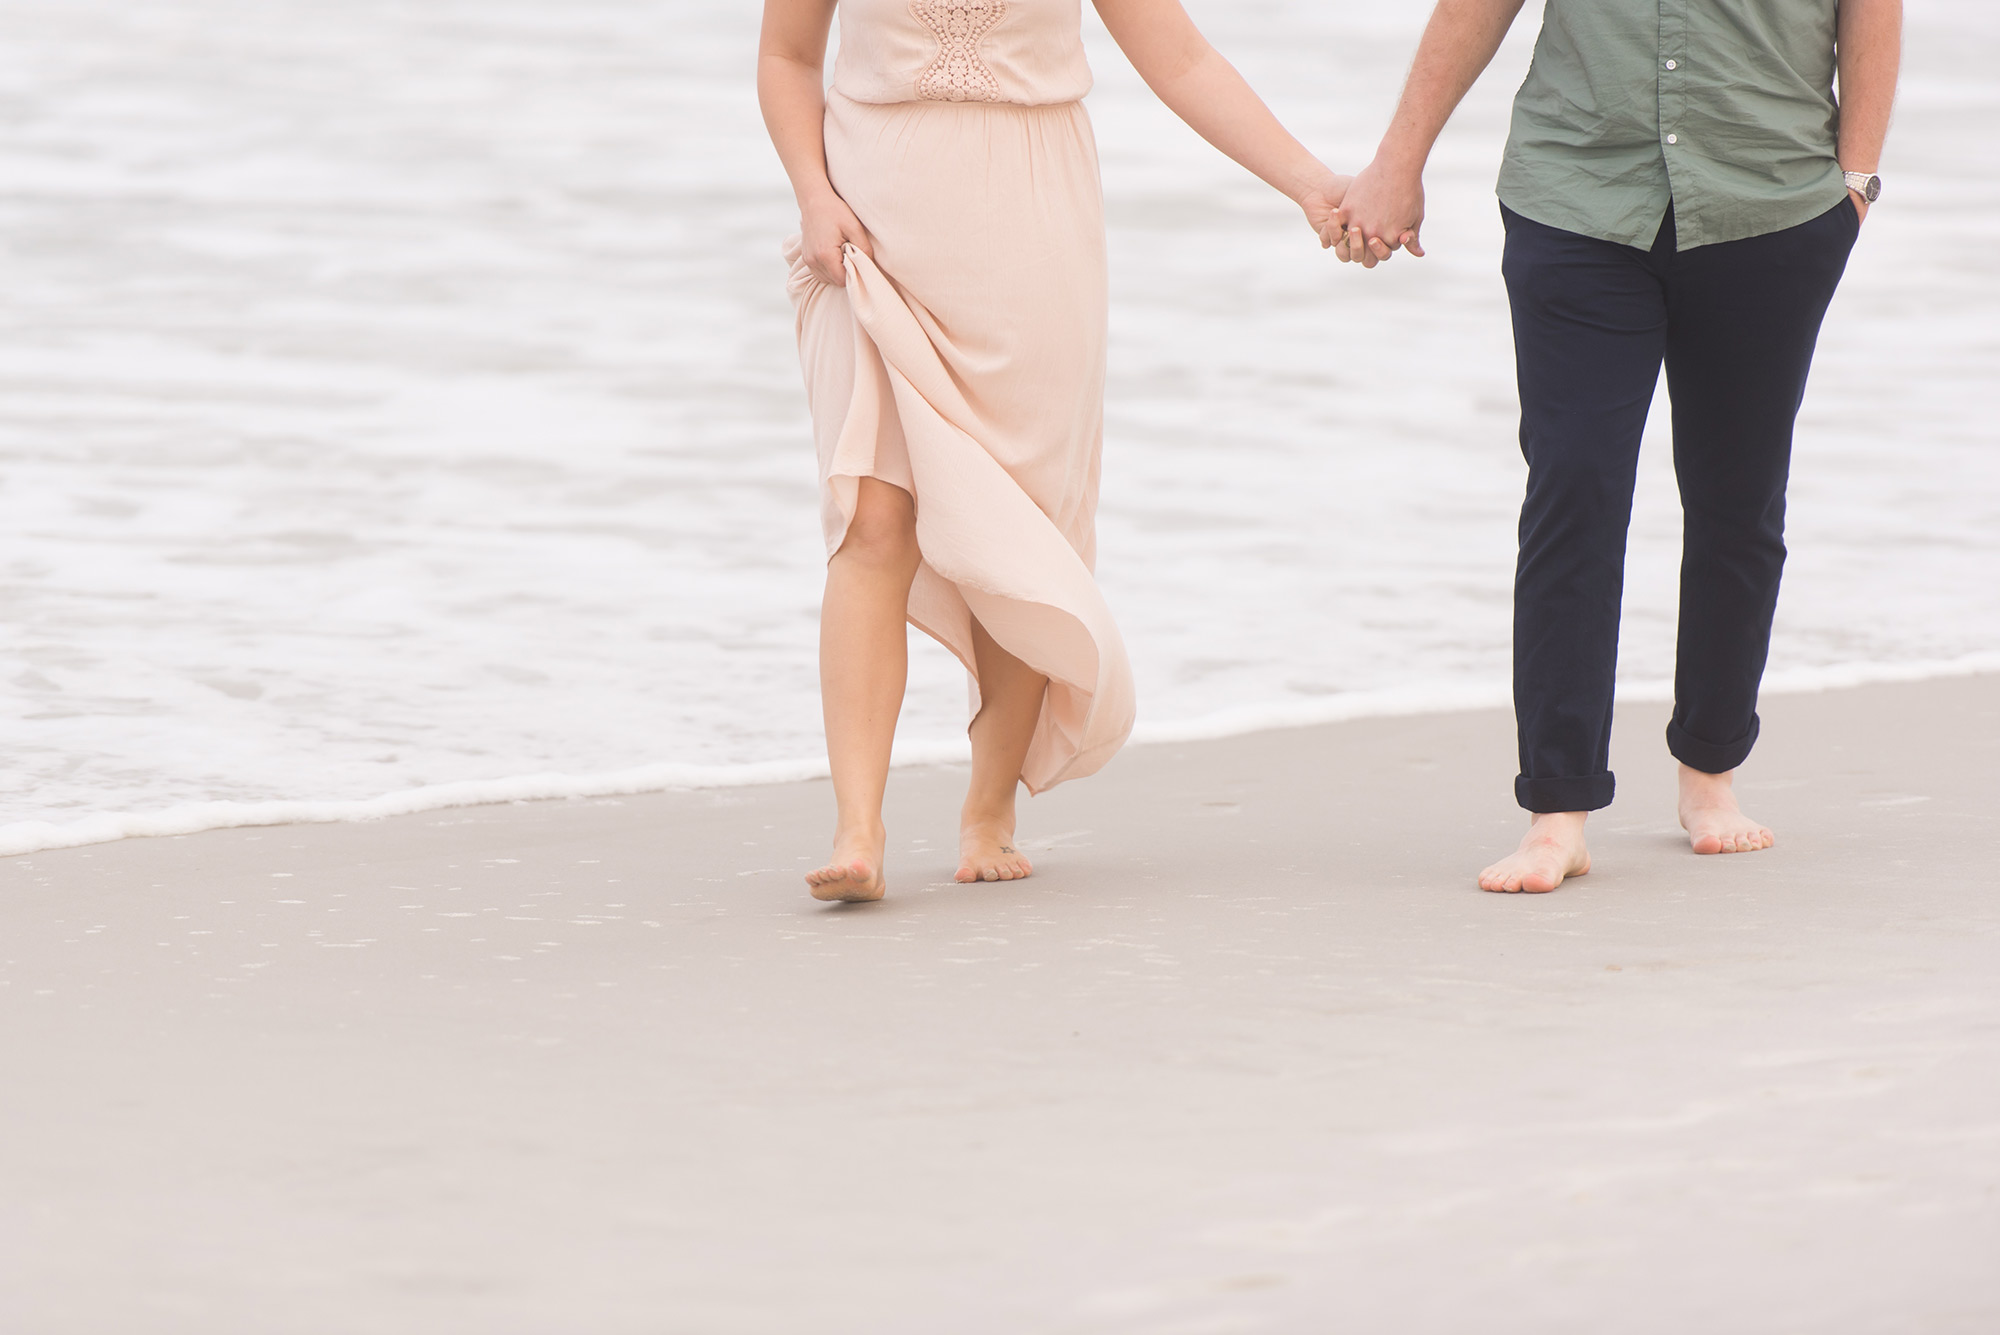 Engaged Couple Holding Hands Walking Barefoot on Beach  |  Hawaii Engagement Photos  |  Life & Art Photography  |  Destination Wedding Photographer